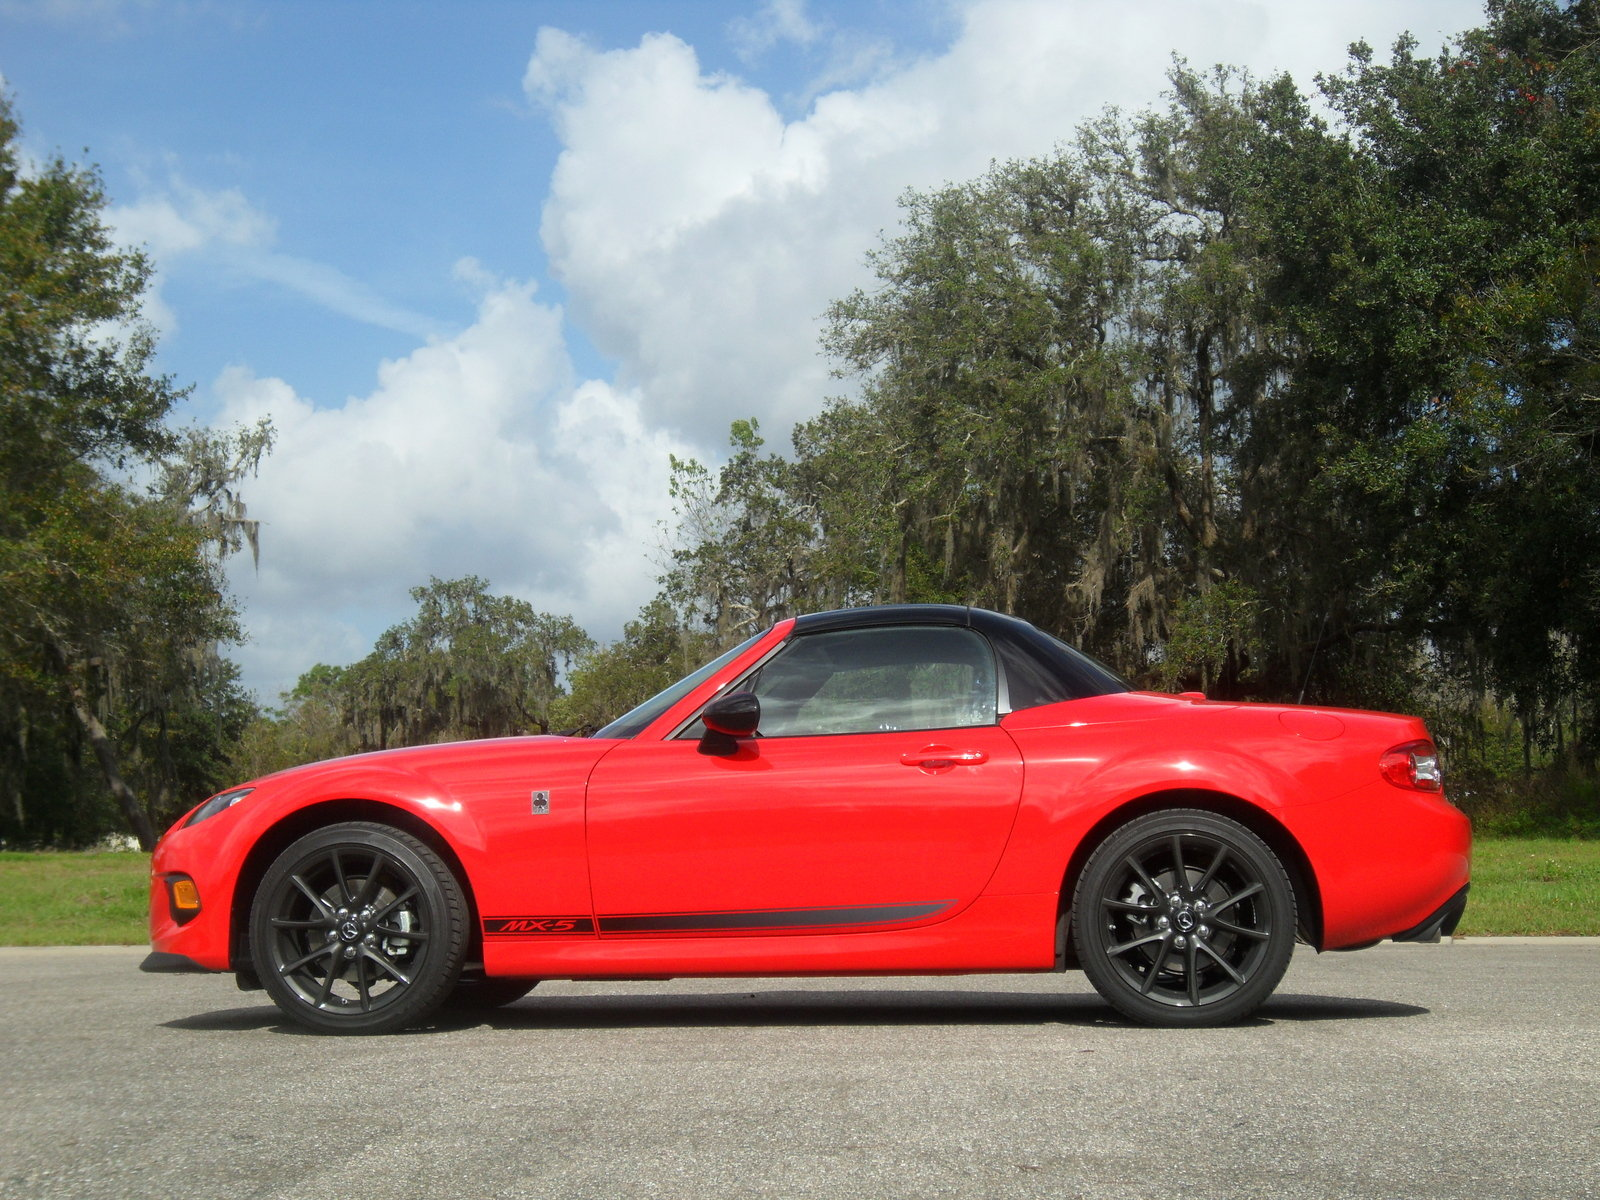 2014 mazda mx 5 miata club driven picture 535441 car review top speed. Black Bedroom Furniture Sets. Home Design Ideas